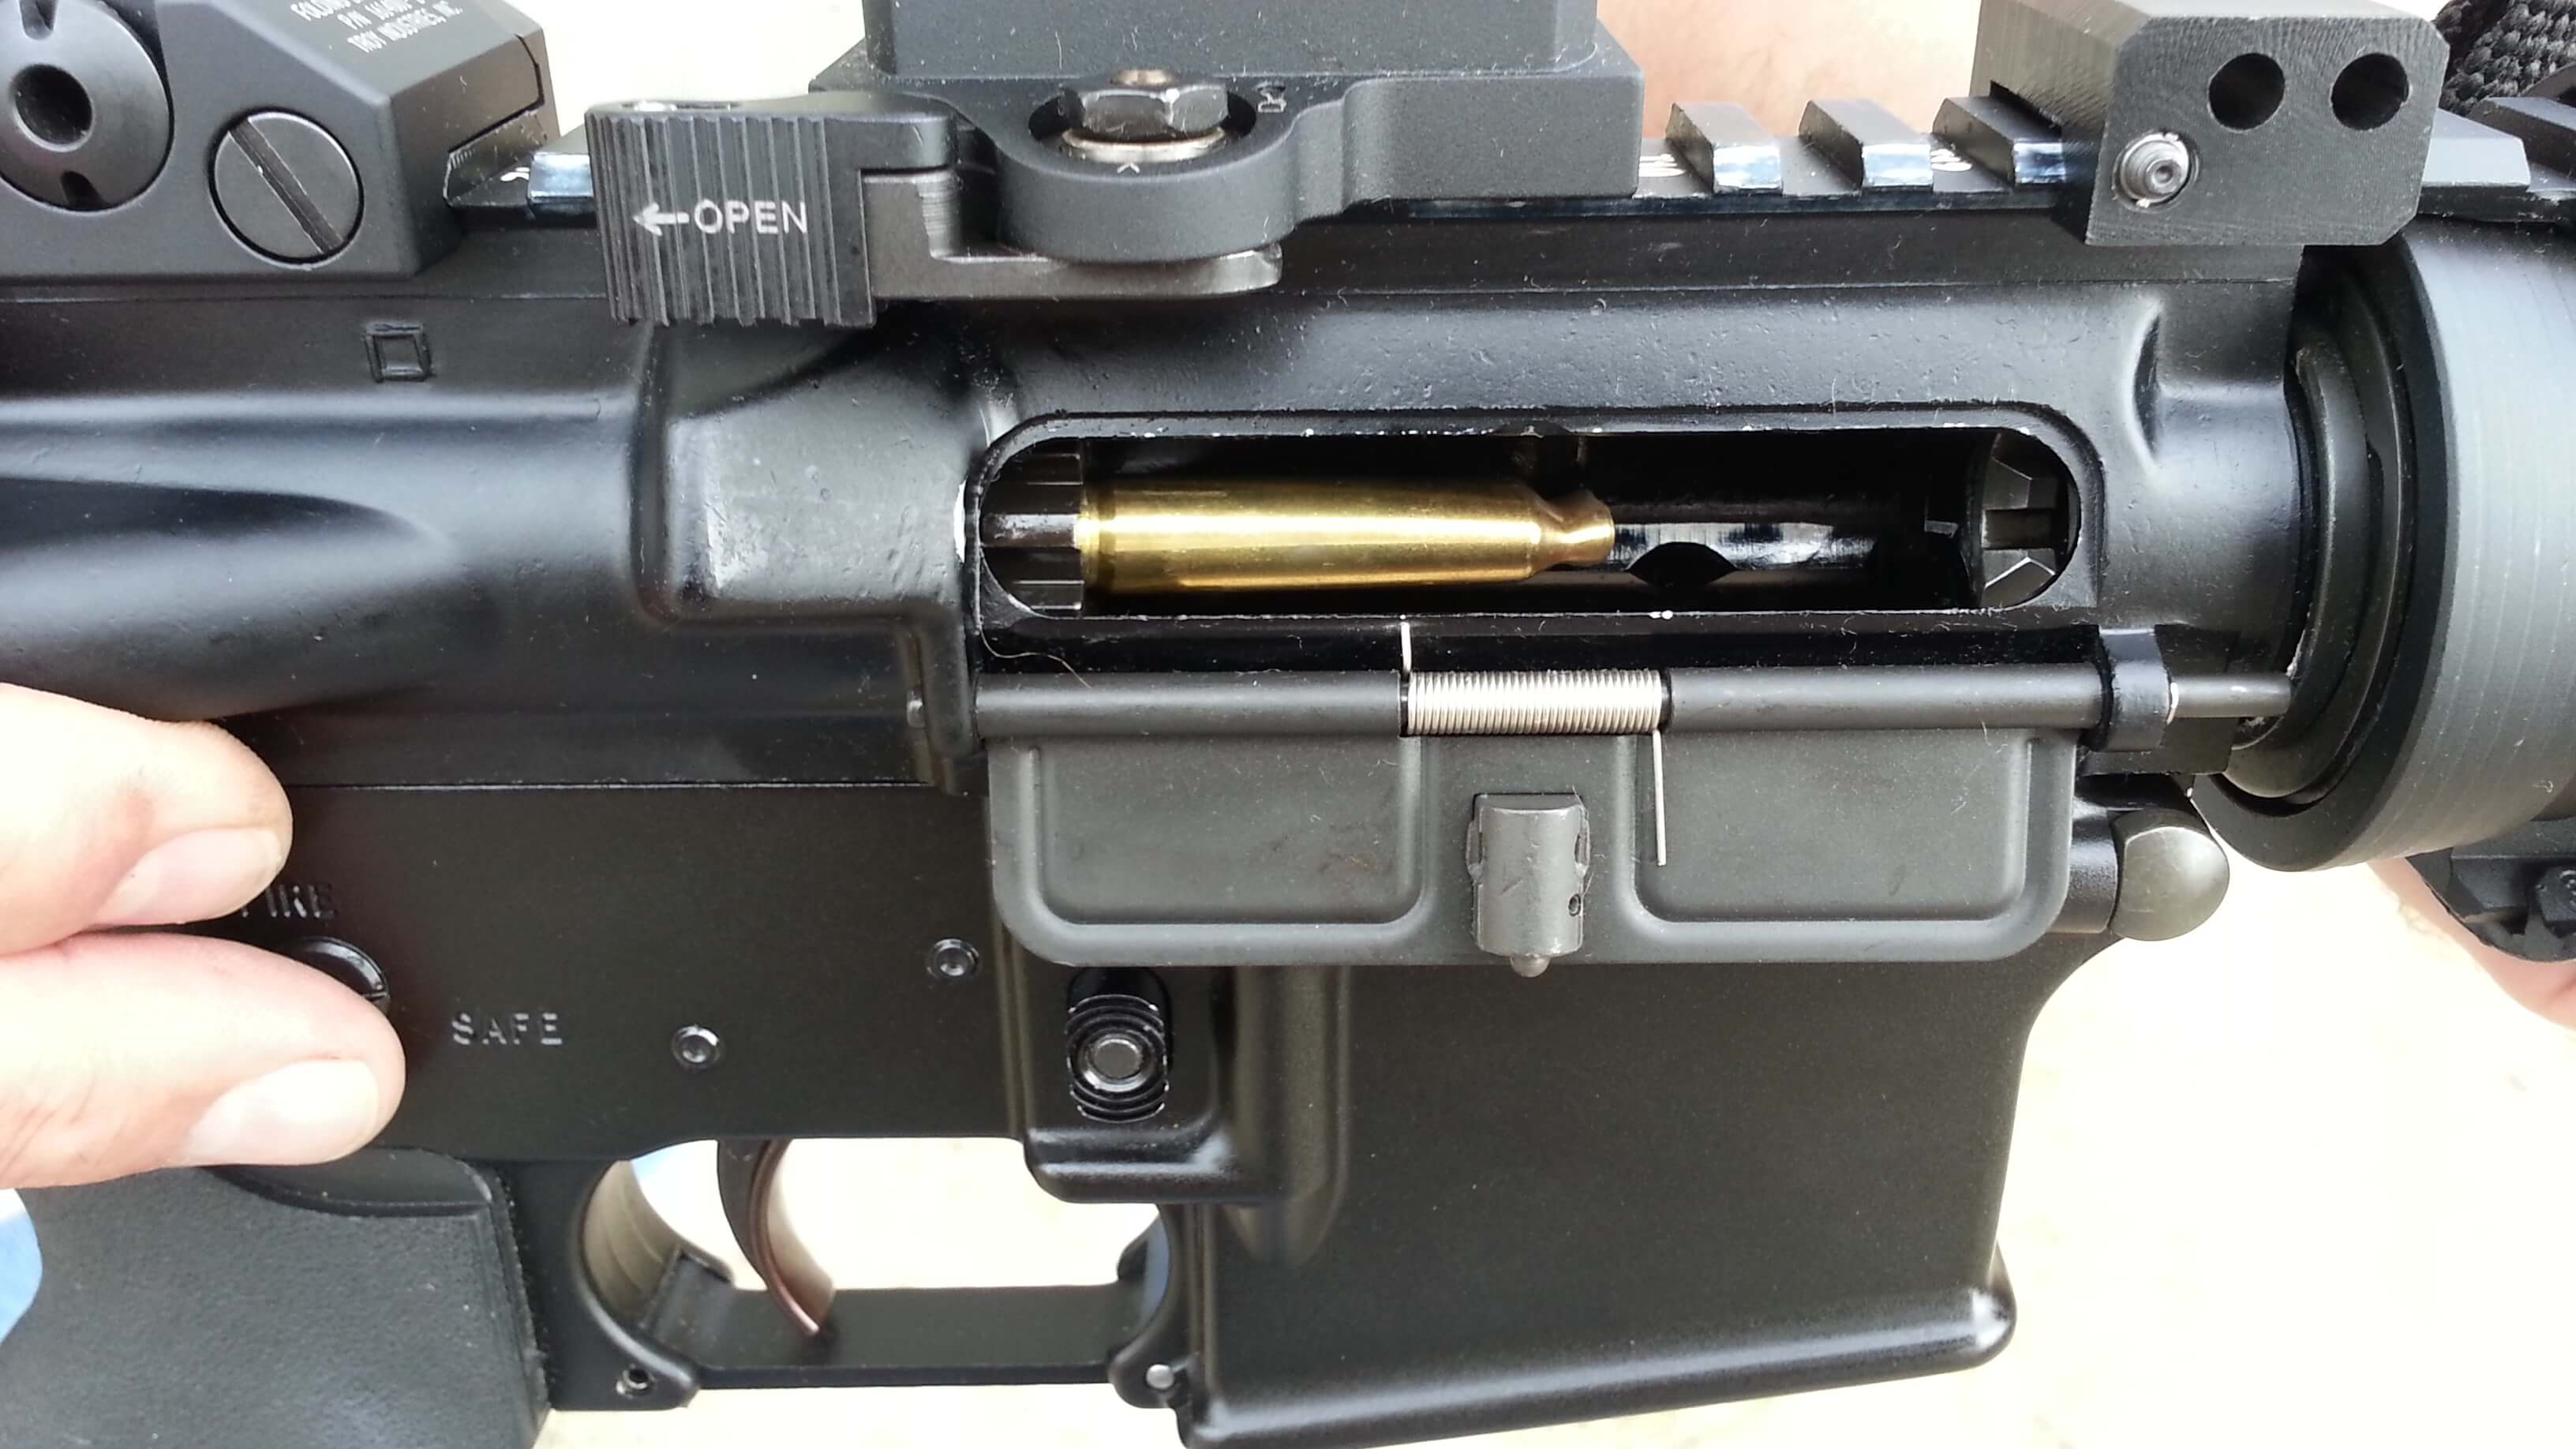 BCM Bolt BCG backwards